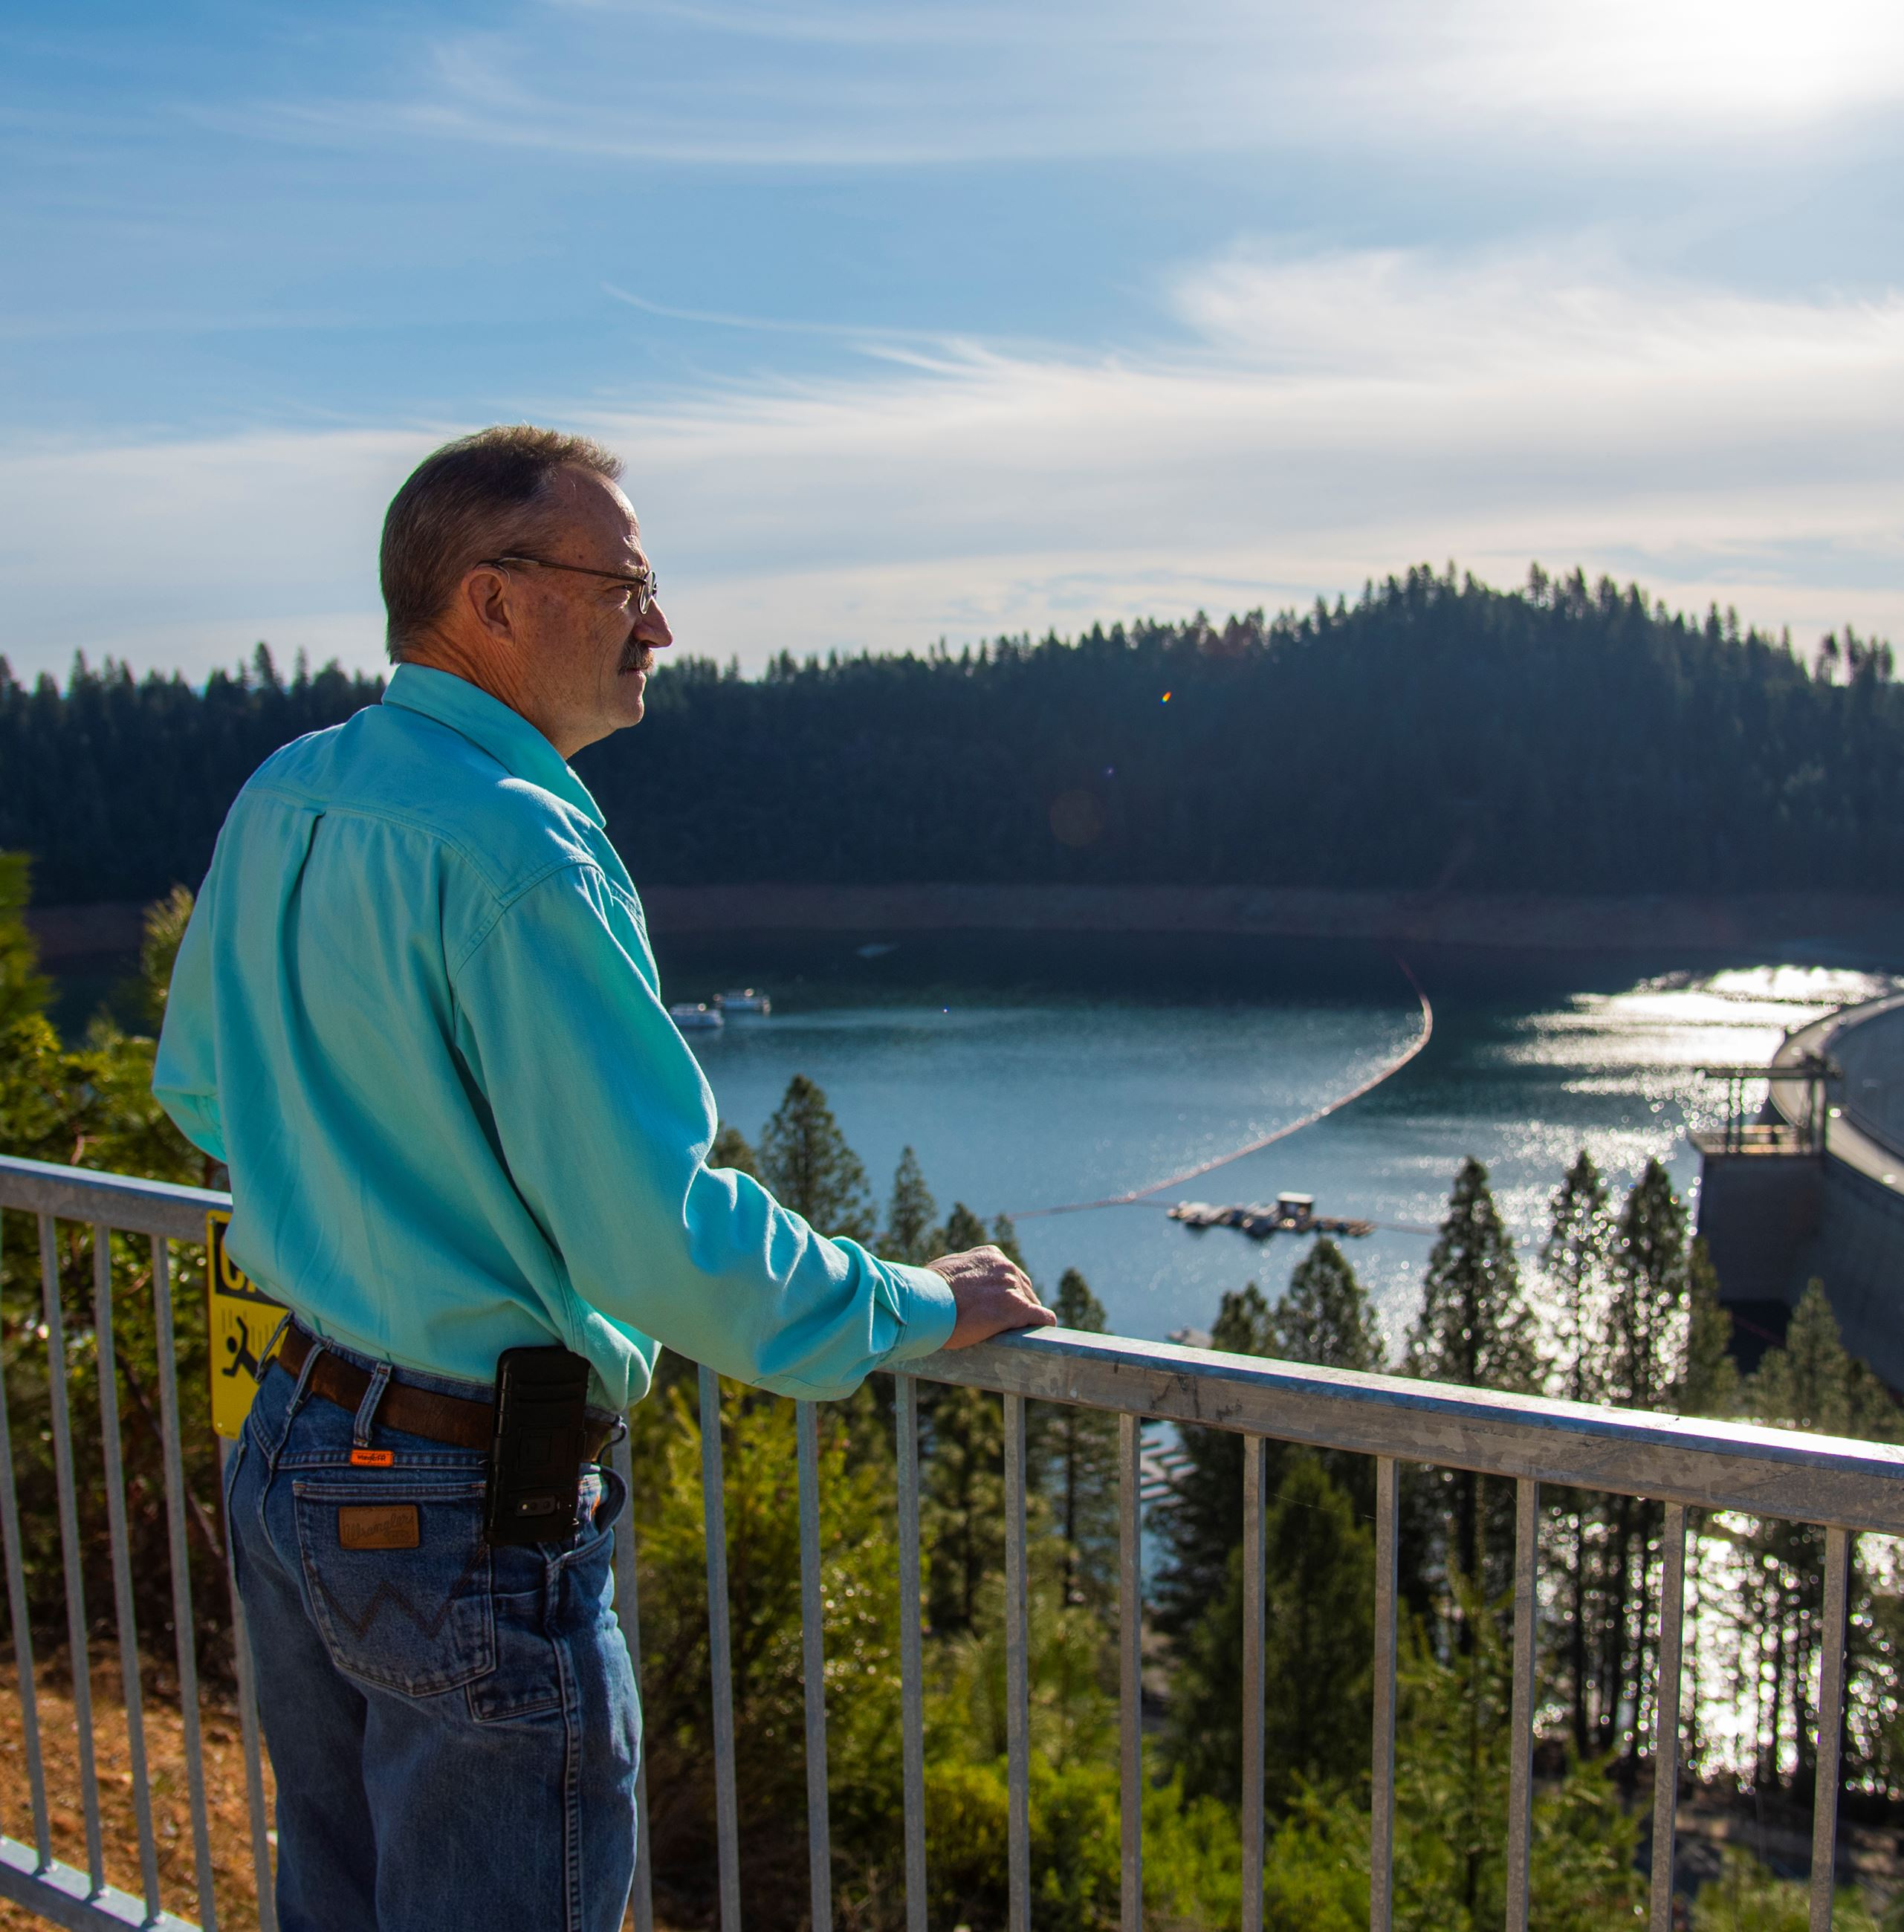 Yuba Water Agency employee Paul Breitag stands above New Bullards Bar Reservoir looking out over the